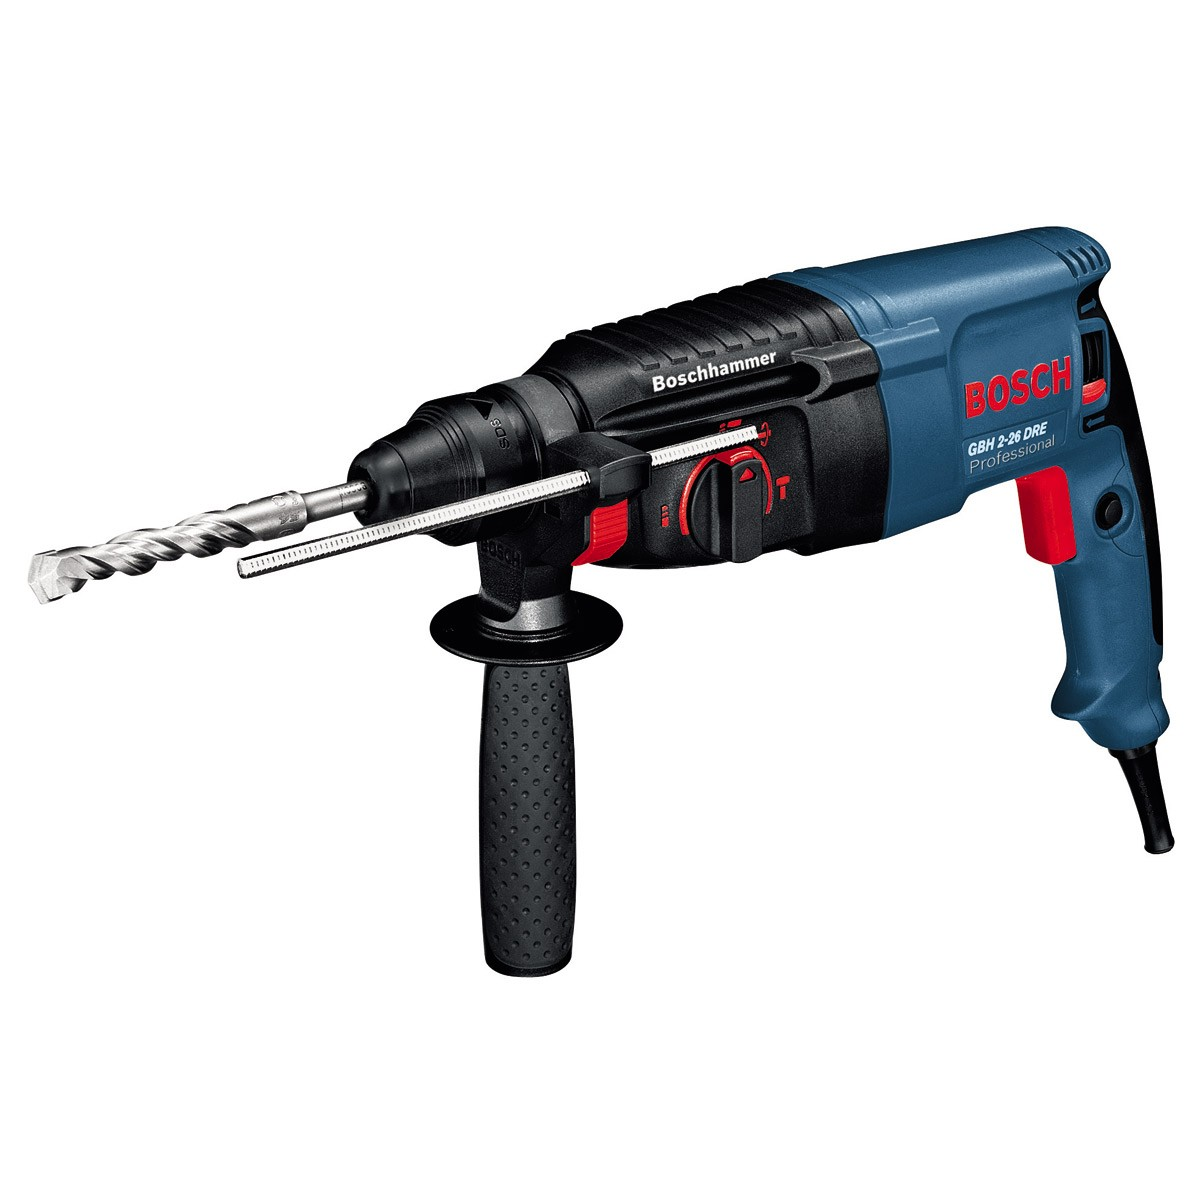 Bosch GBH 2-26 DRE SDS+ Rotary Hammer Drill